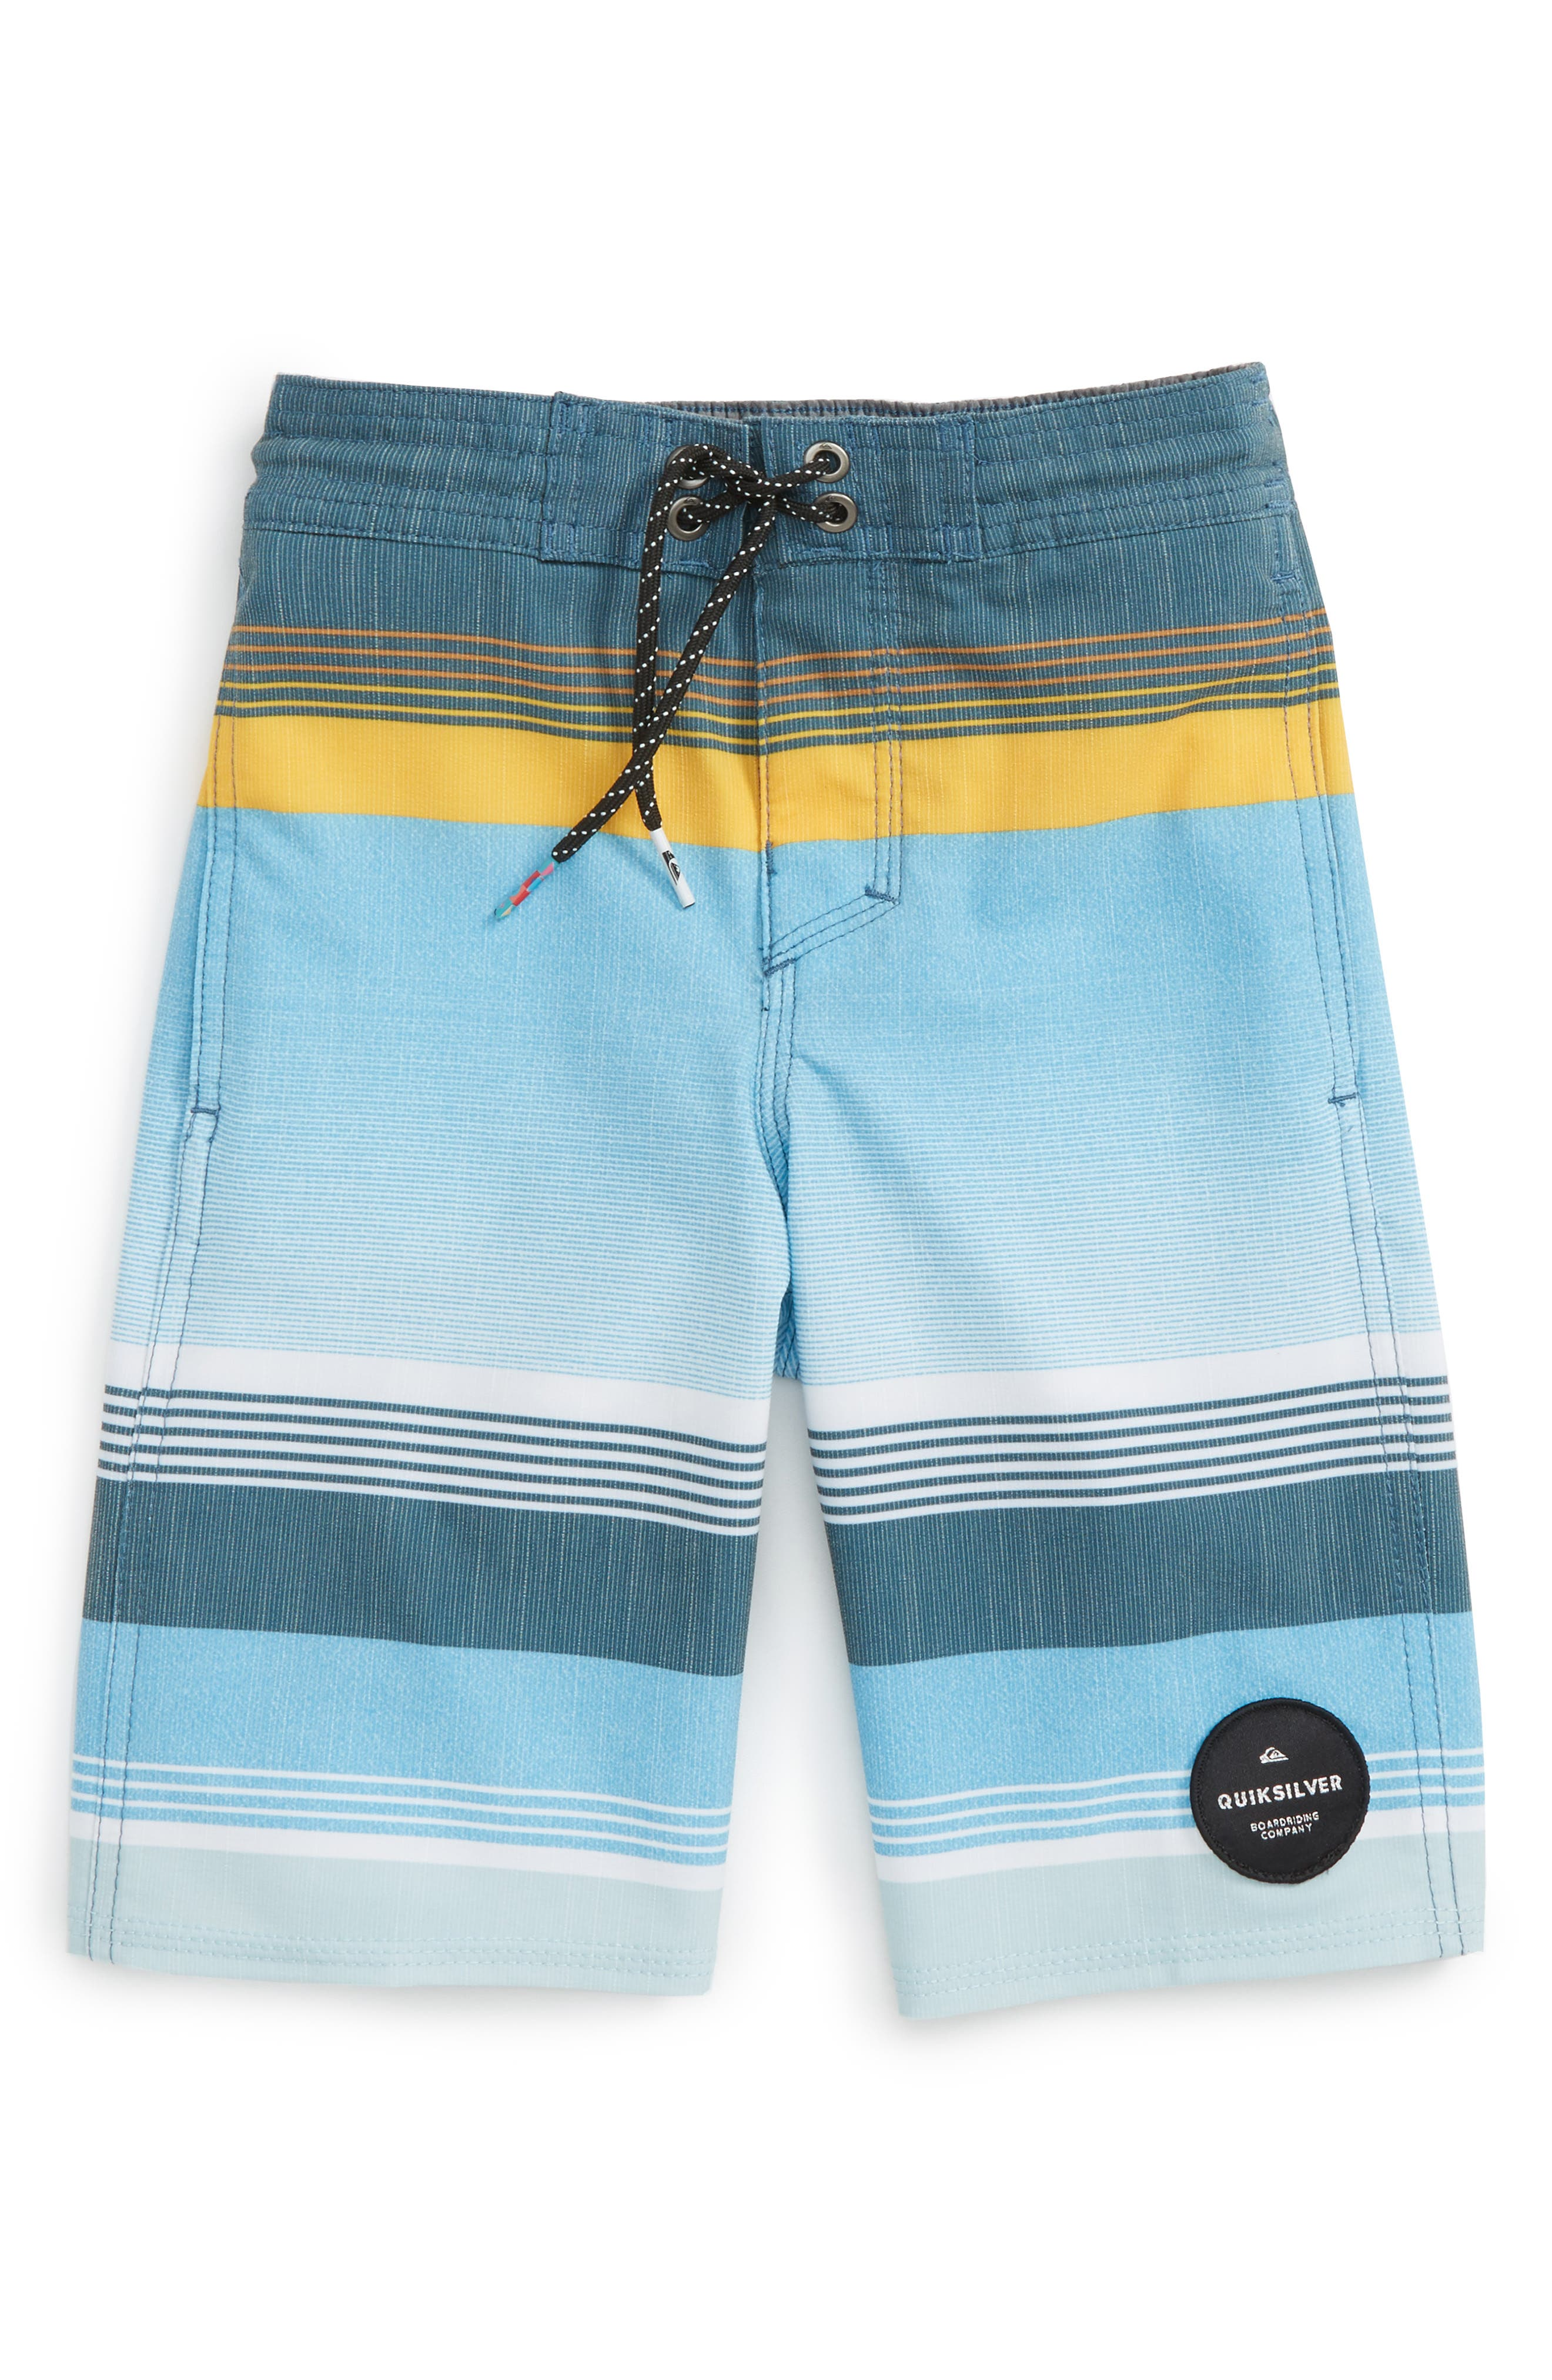 Quiksilver Swell Vision Board Shorts (Toddler Boys & Little Boys)